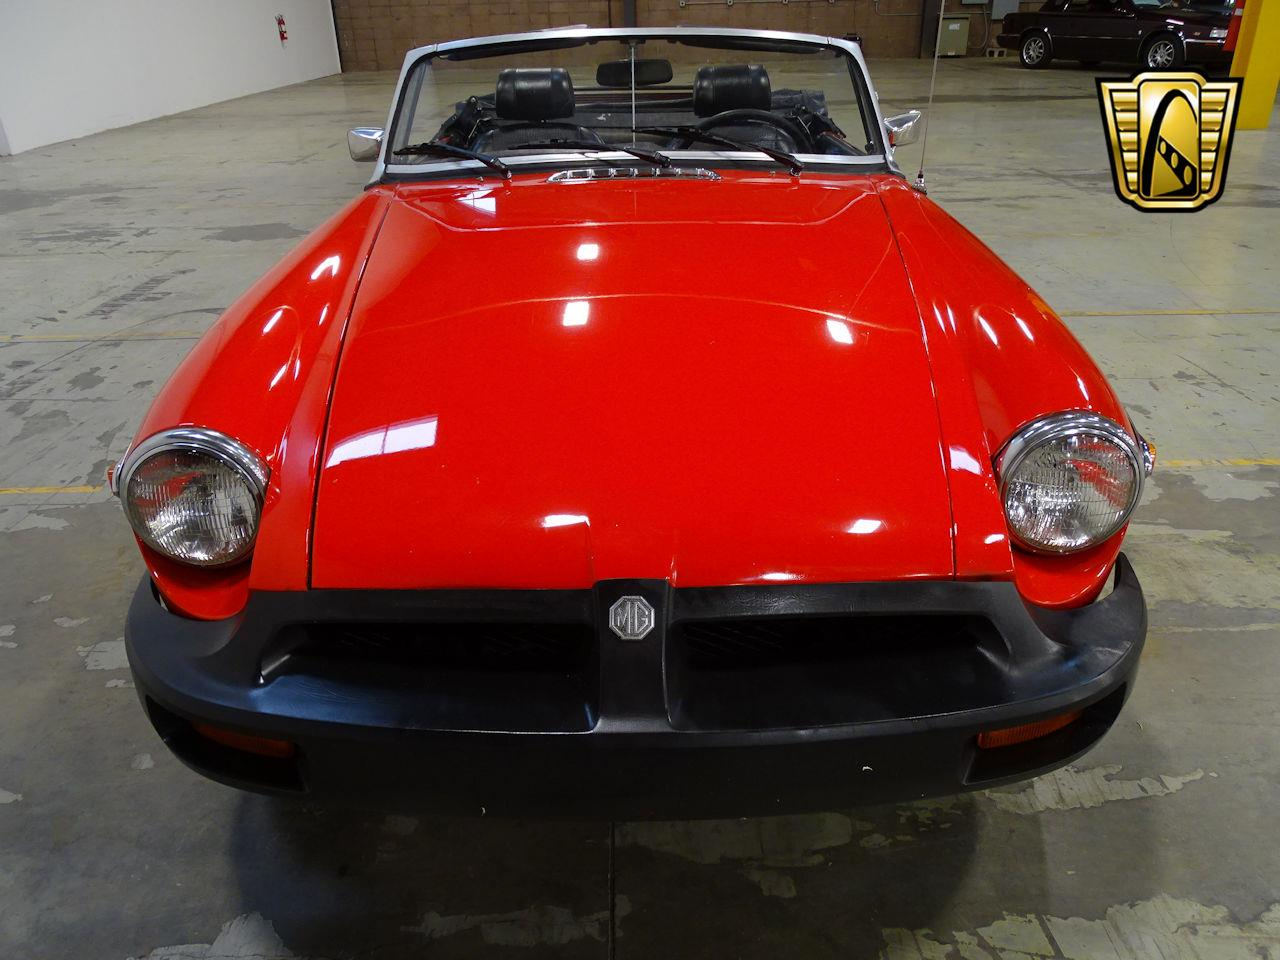 Large Picture of '75 MG MGB located in New Jersey - $11,595.00 - L7N7